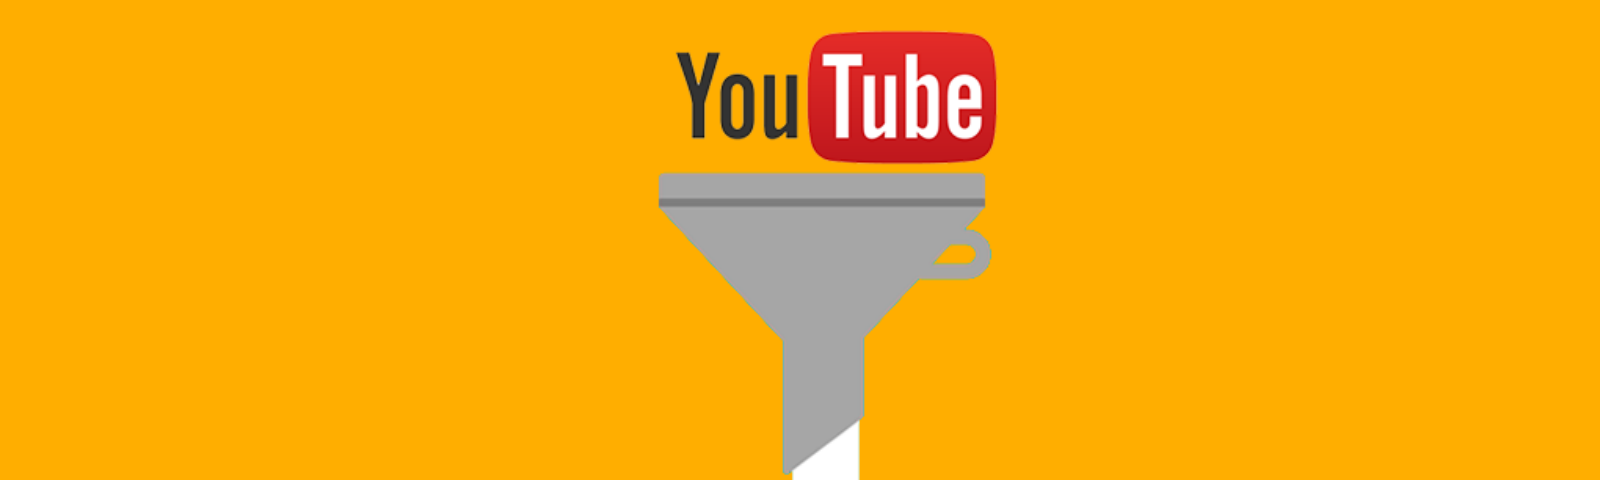 Scraping YouTube Data using Python and Selenium to Classify